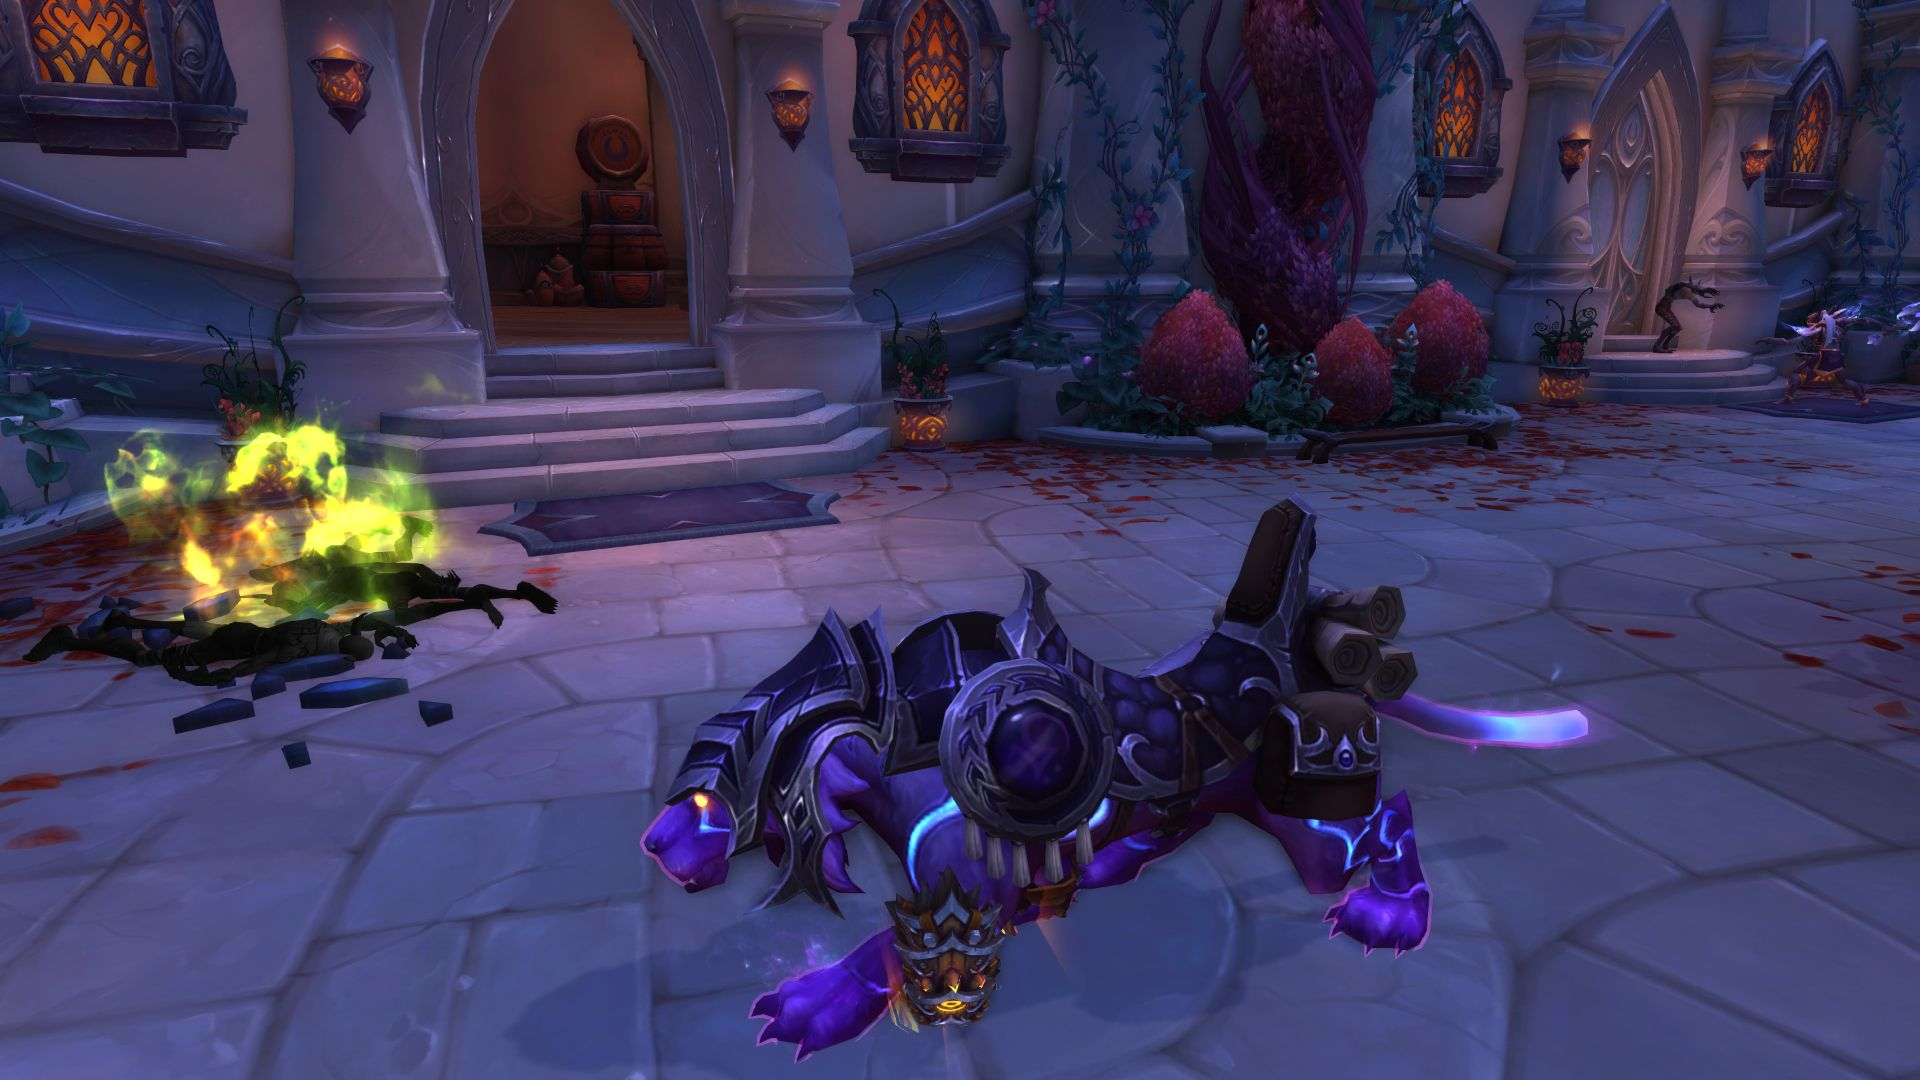 When you know they don't fit but you wear them anyways #worldofwarcraft #blizzard #Hearthstone #wow #Warcraft #BlizzardCS #gaming